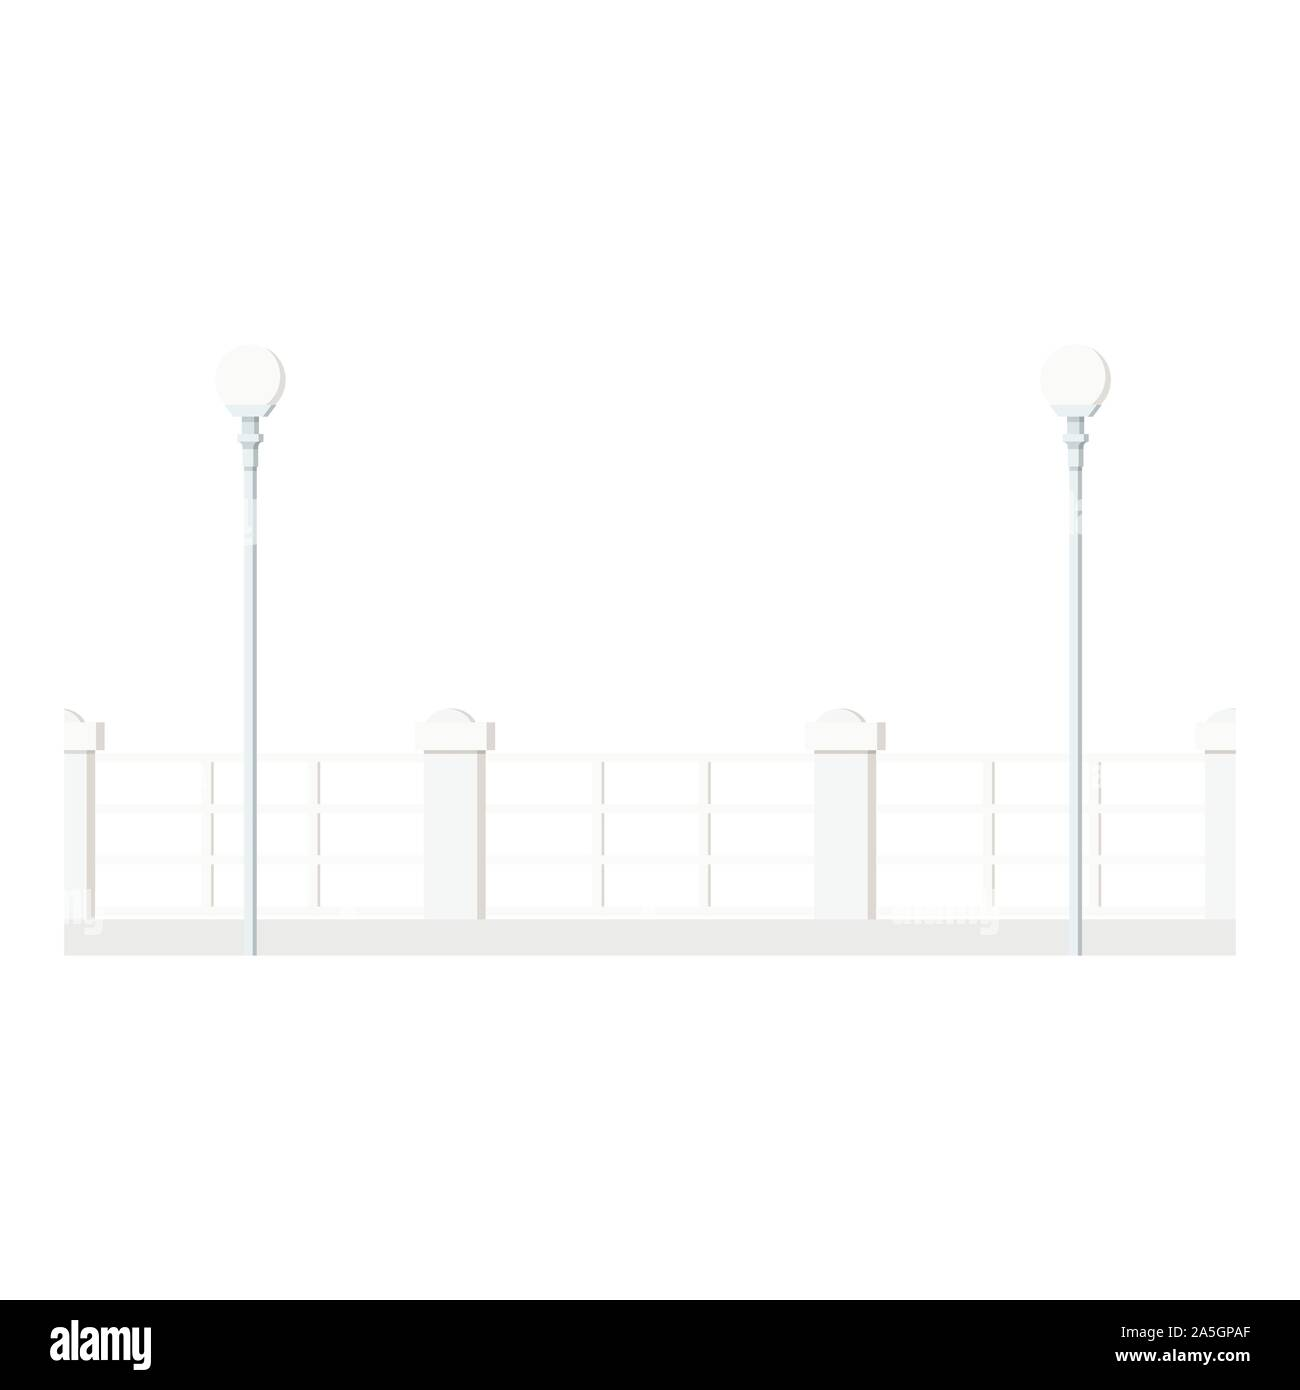 Flat design cartoon style image of a long row of white decorative metal street fence with round streetlight lanterns Stock Vector